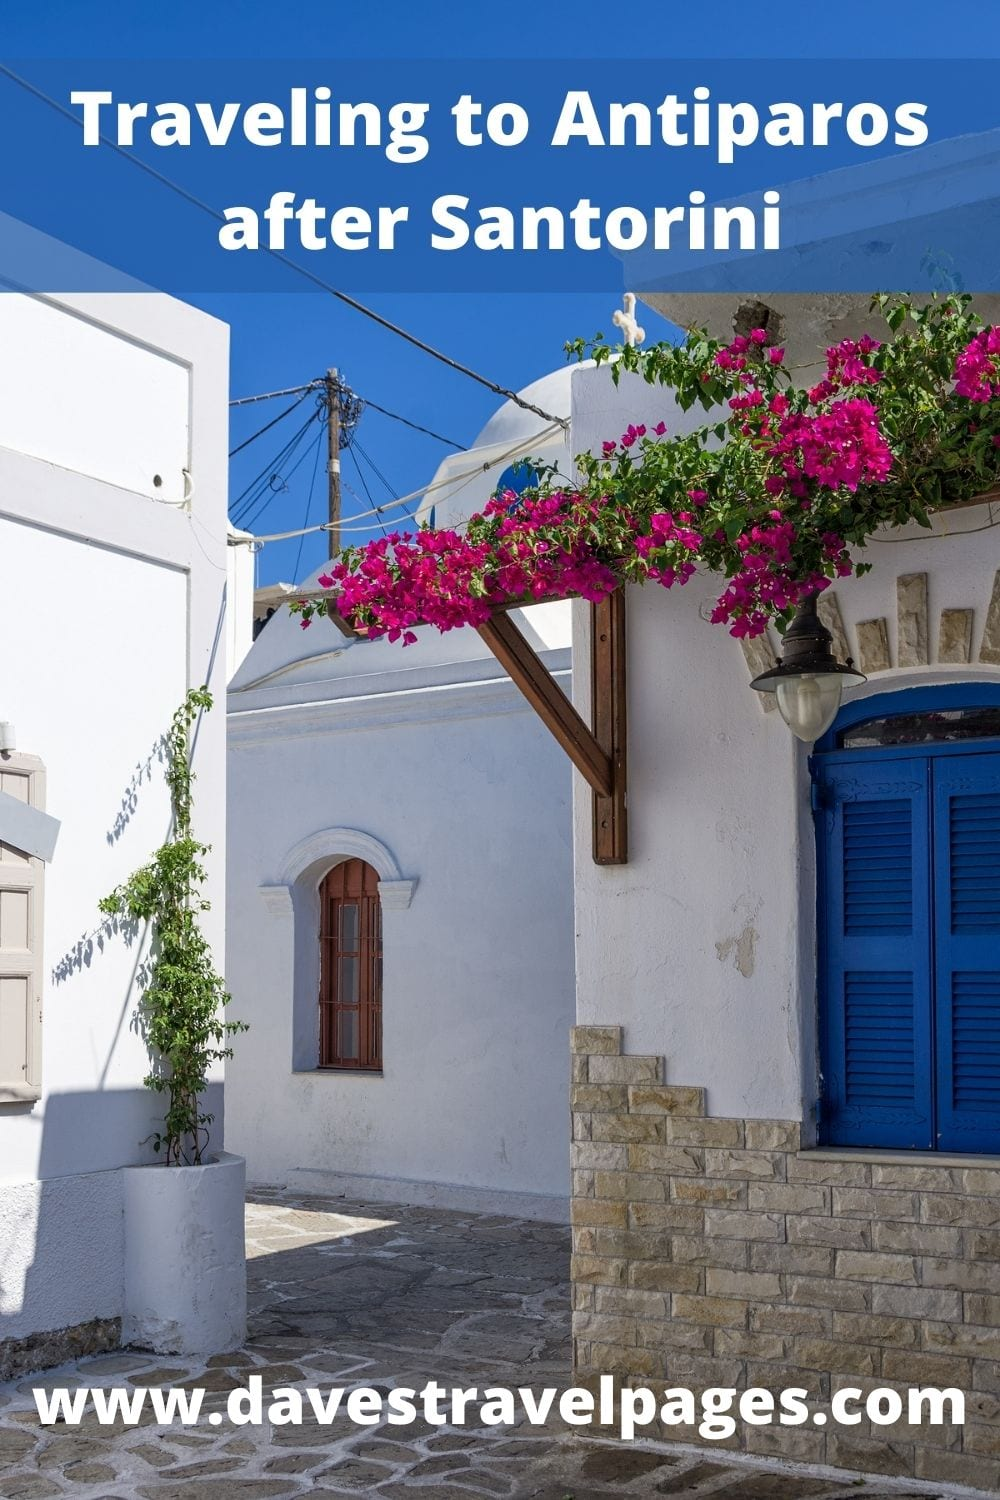 How to travel to Antiparos after Santorini by ferry